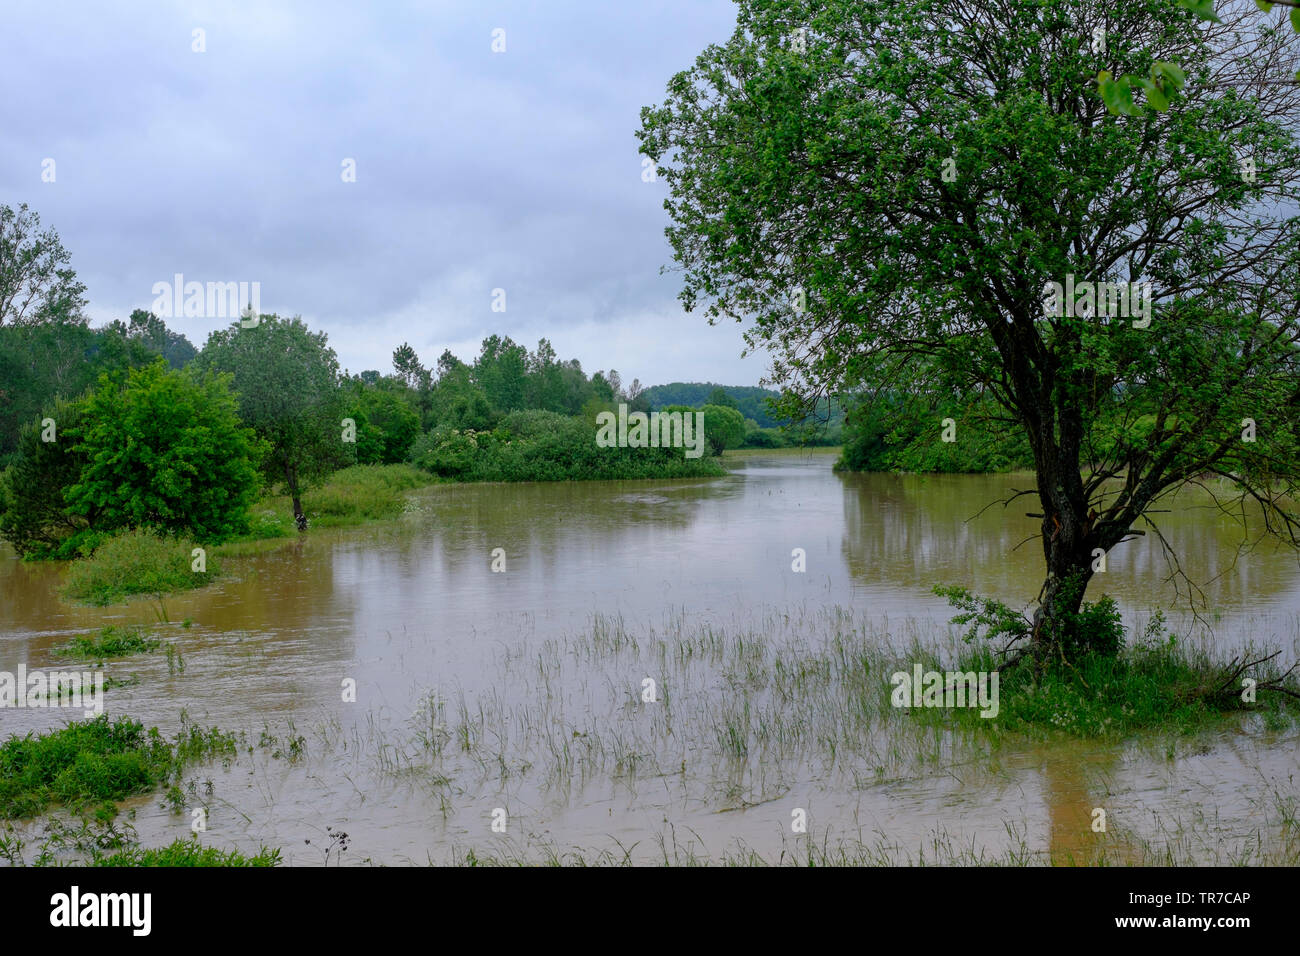 small river overflows after a period of prolonged heavy rain flooding the surrounding fields and meadows zala county hungary Stock Photo